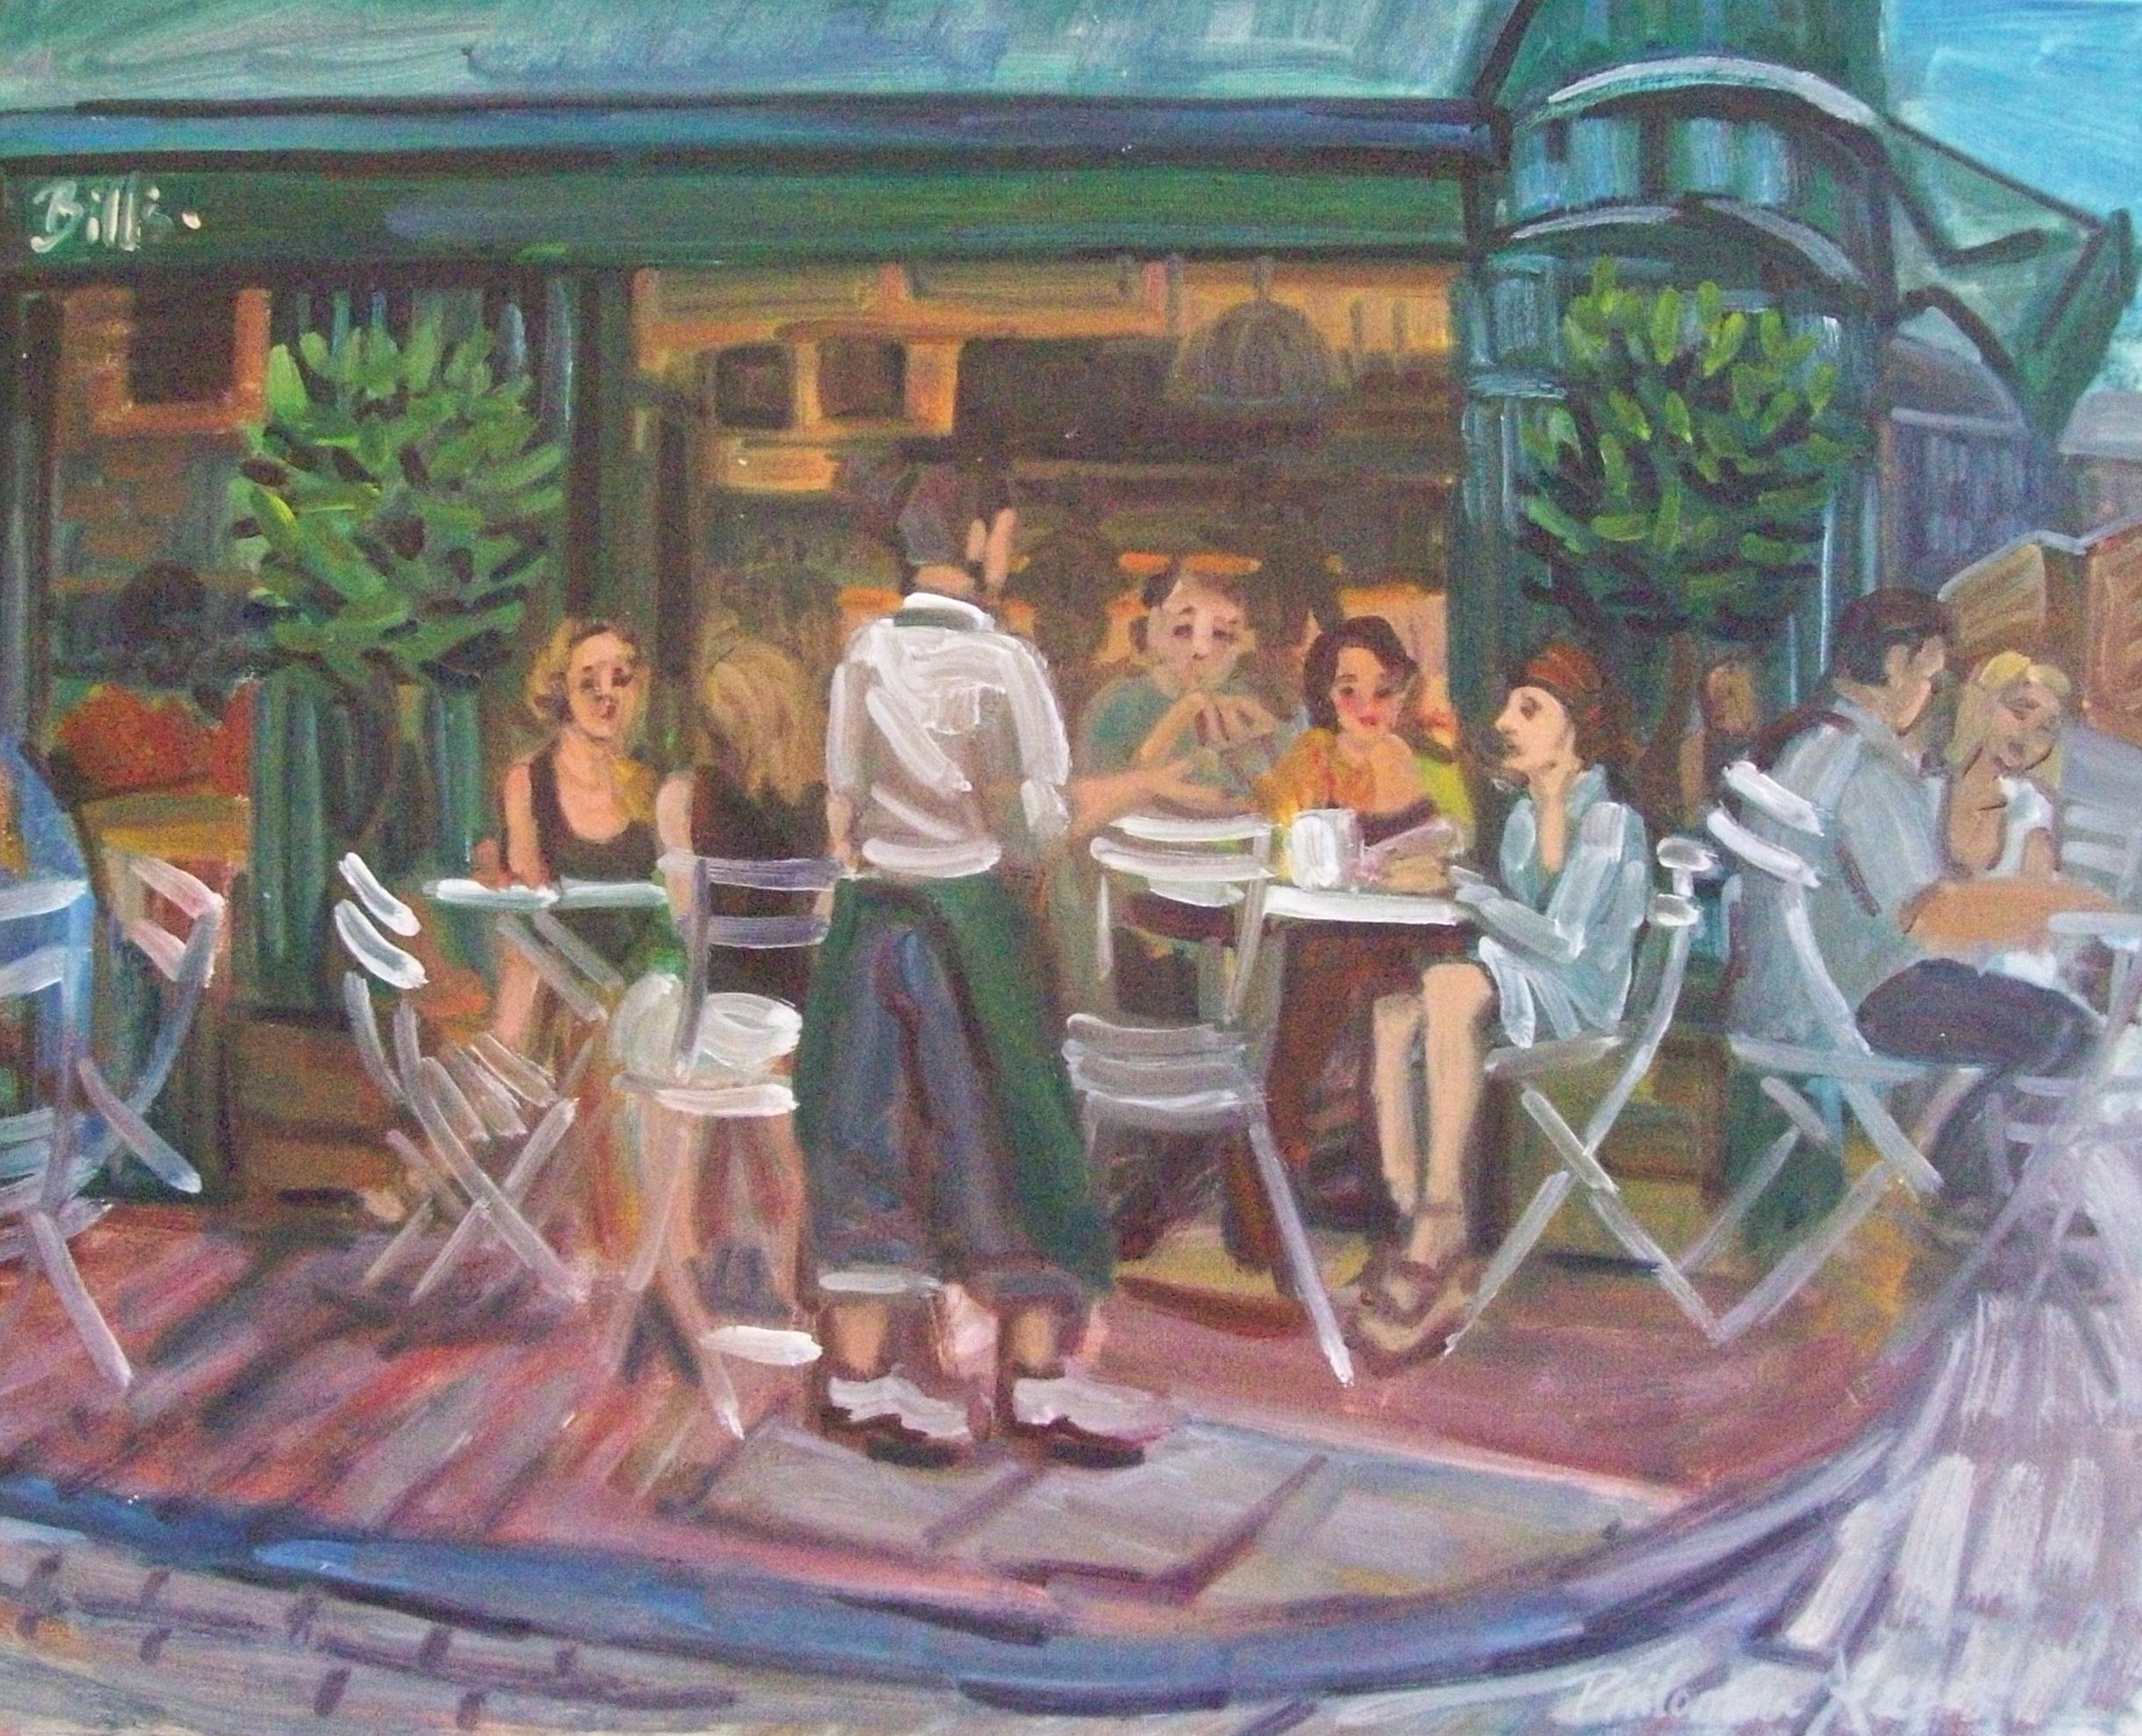 Bill's, Lewes, painting by Philomena Harmsworth